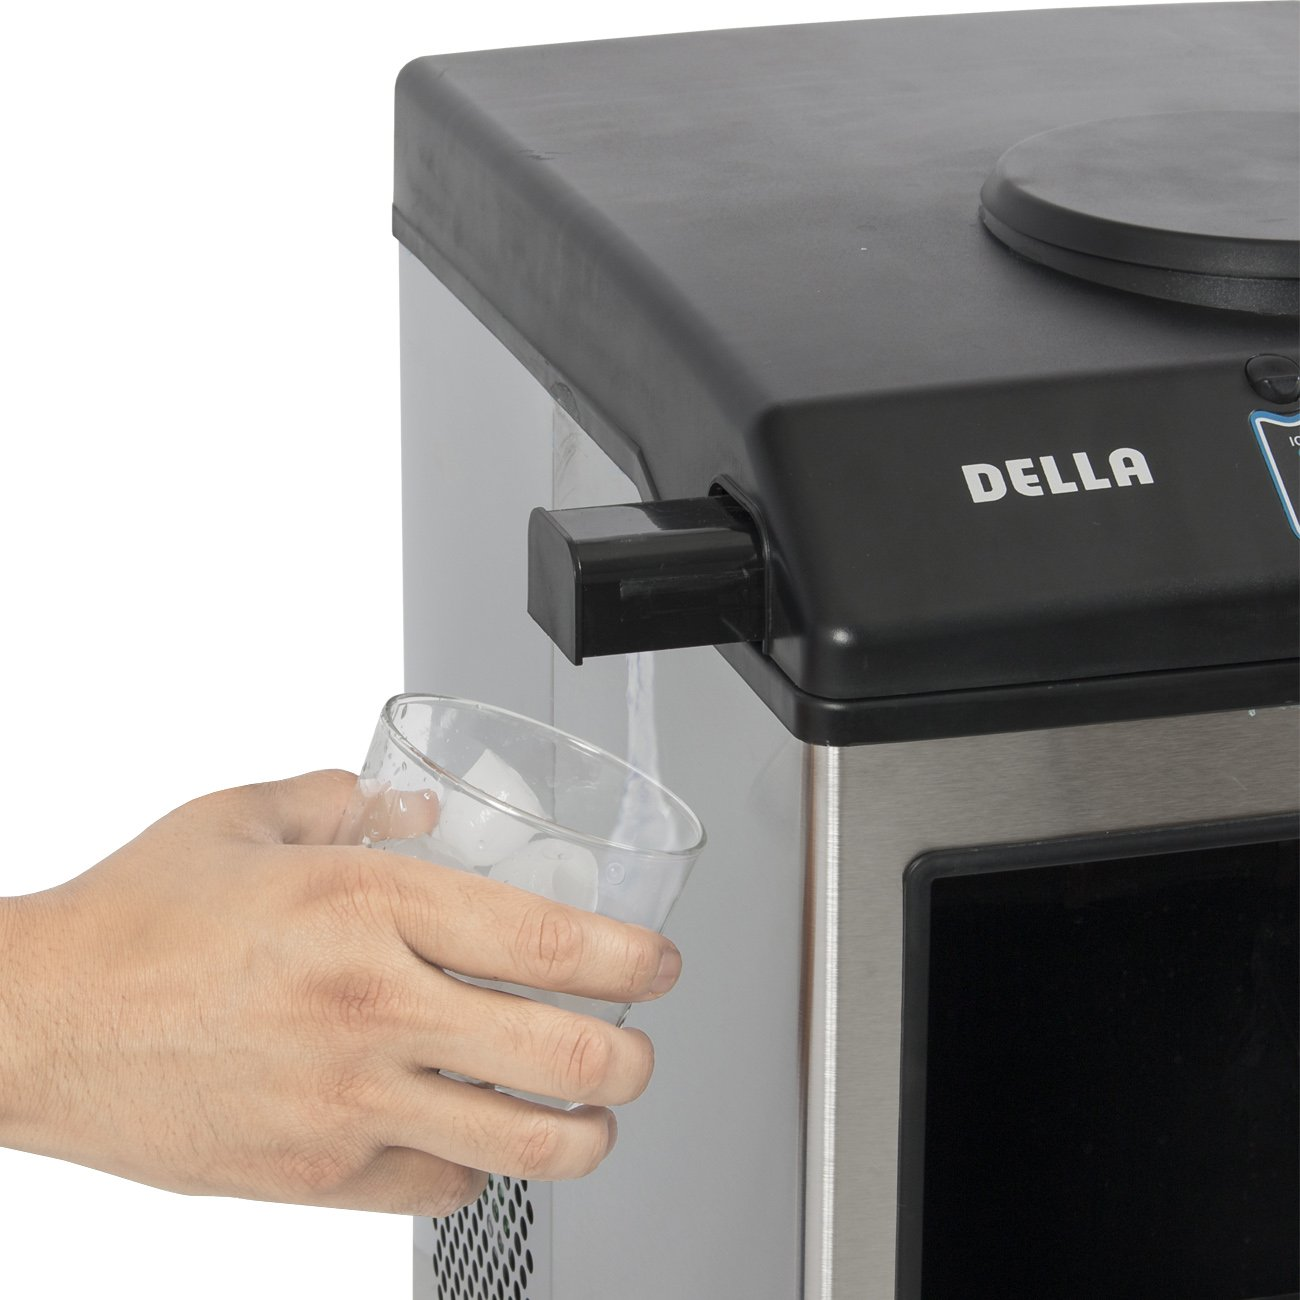 Amazon.com: Della Stainless Steel Water Dispenser W/ Built In Ice Maker  Machine Counter Portable, 40 Pound: Appliances